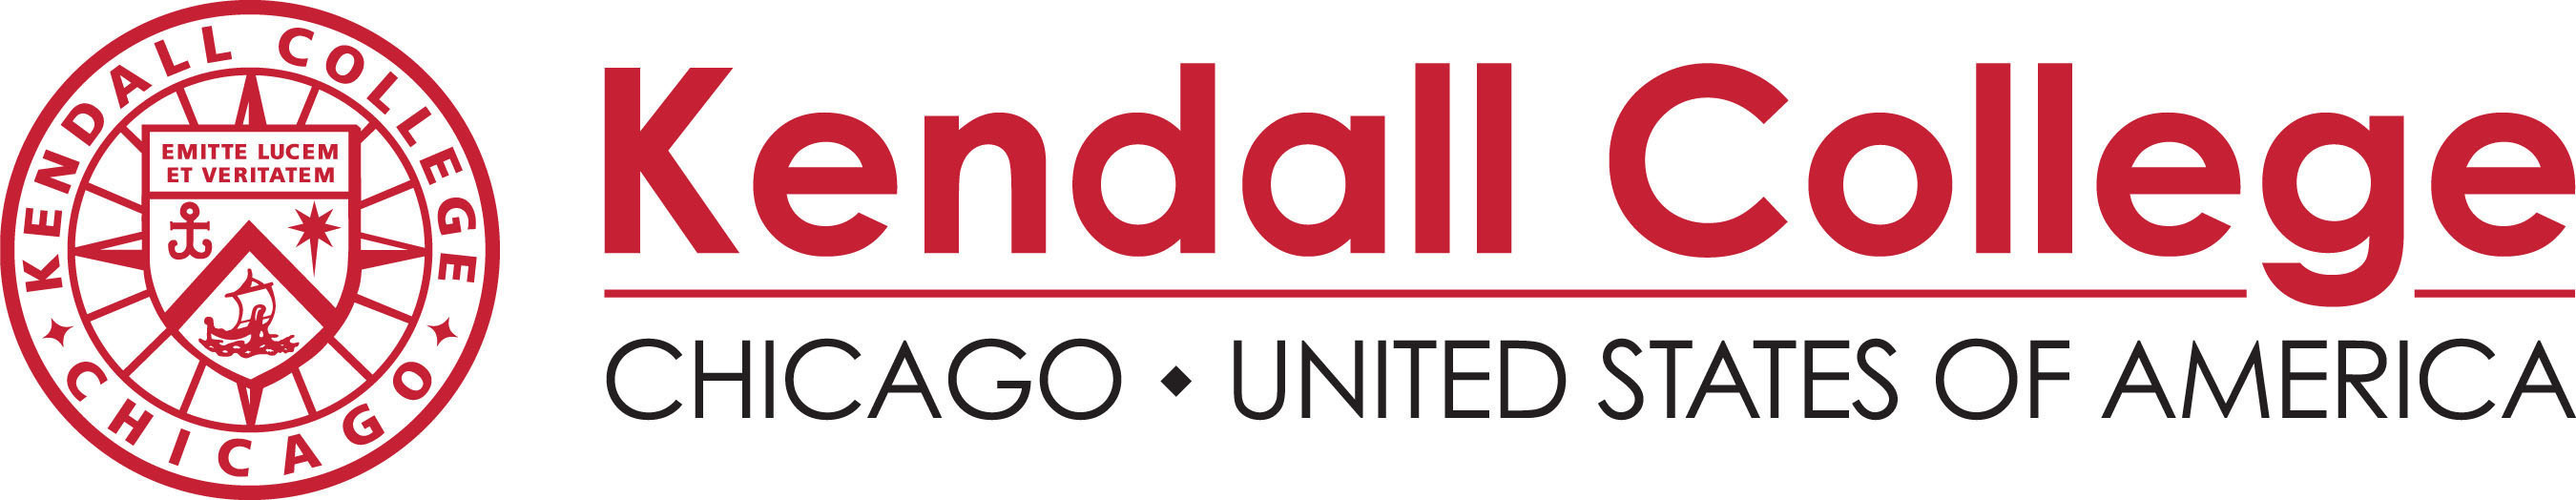 Kendall College logo